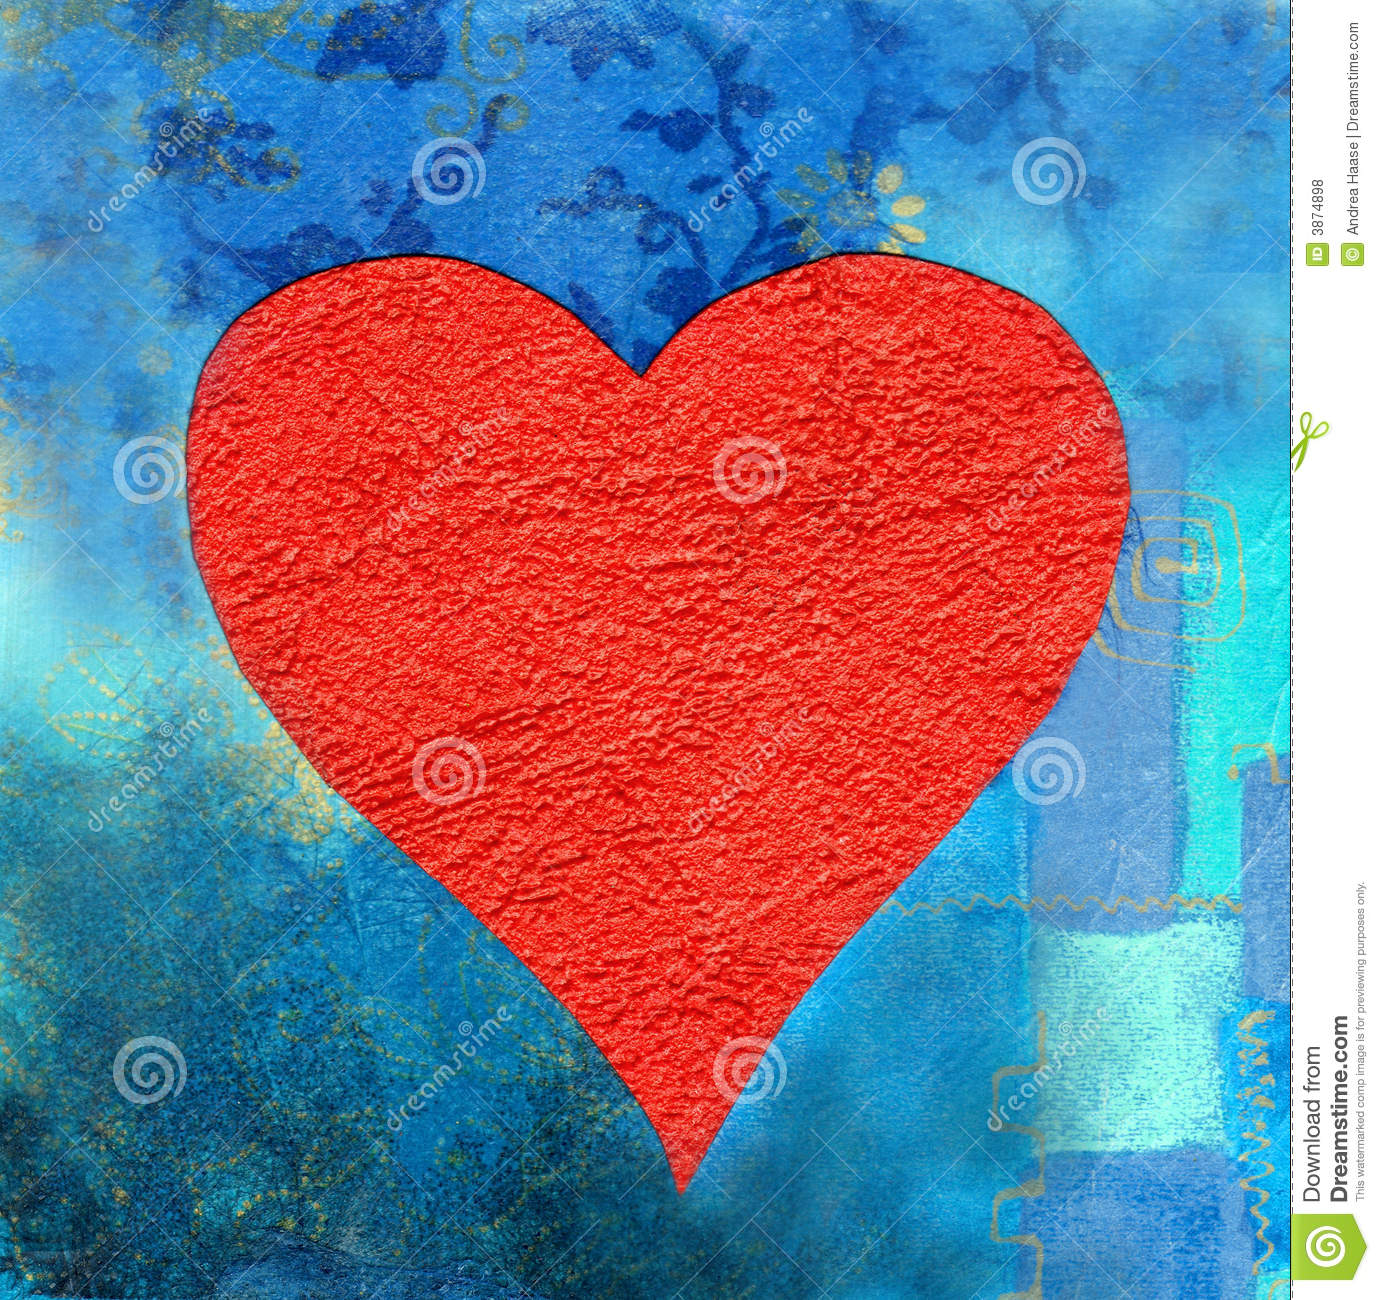 Red Heart On Blue Background Royalty Free Stock Photos ...